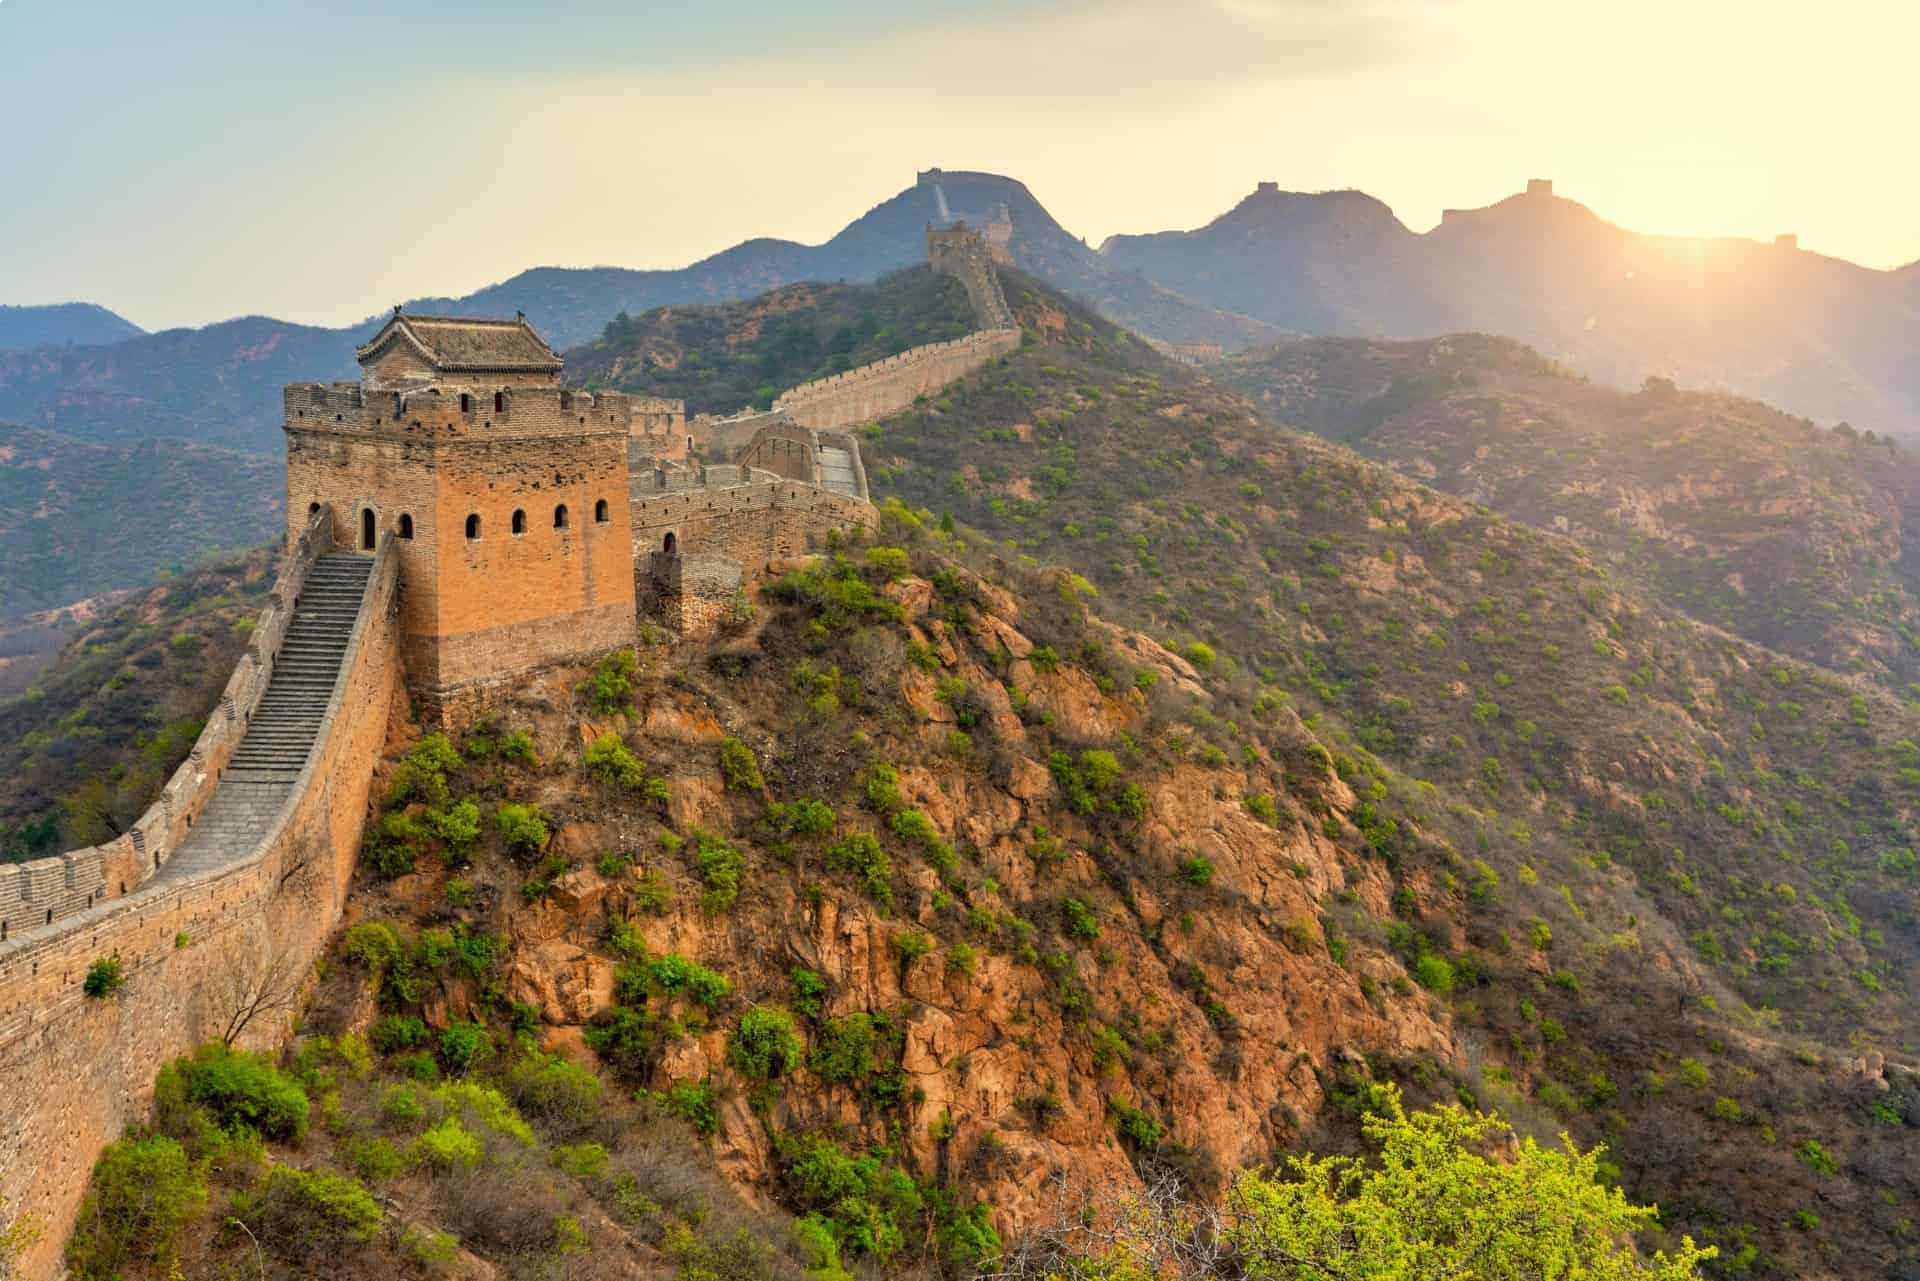 The Great Wall of China - built to repel Mongol invaders